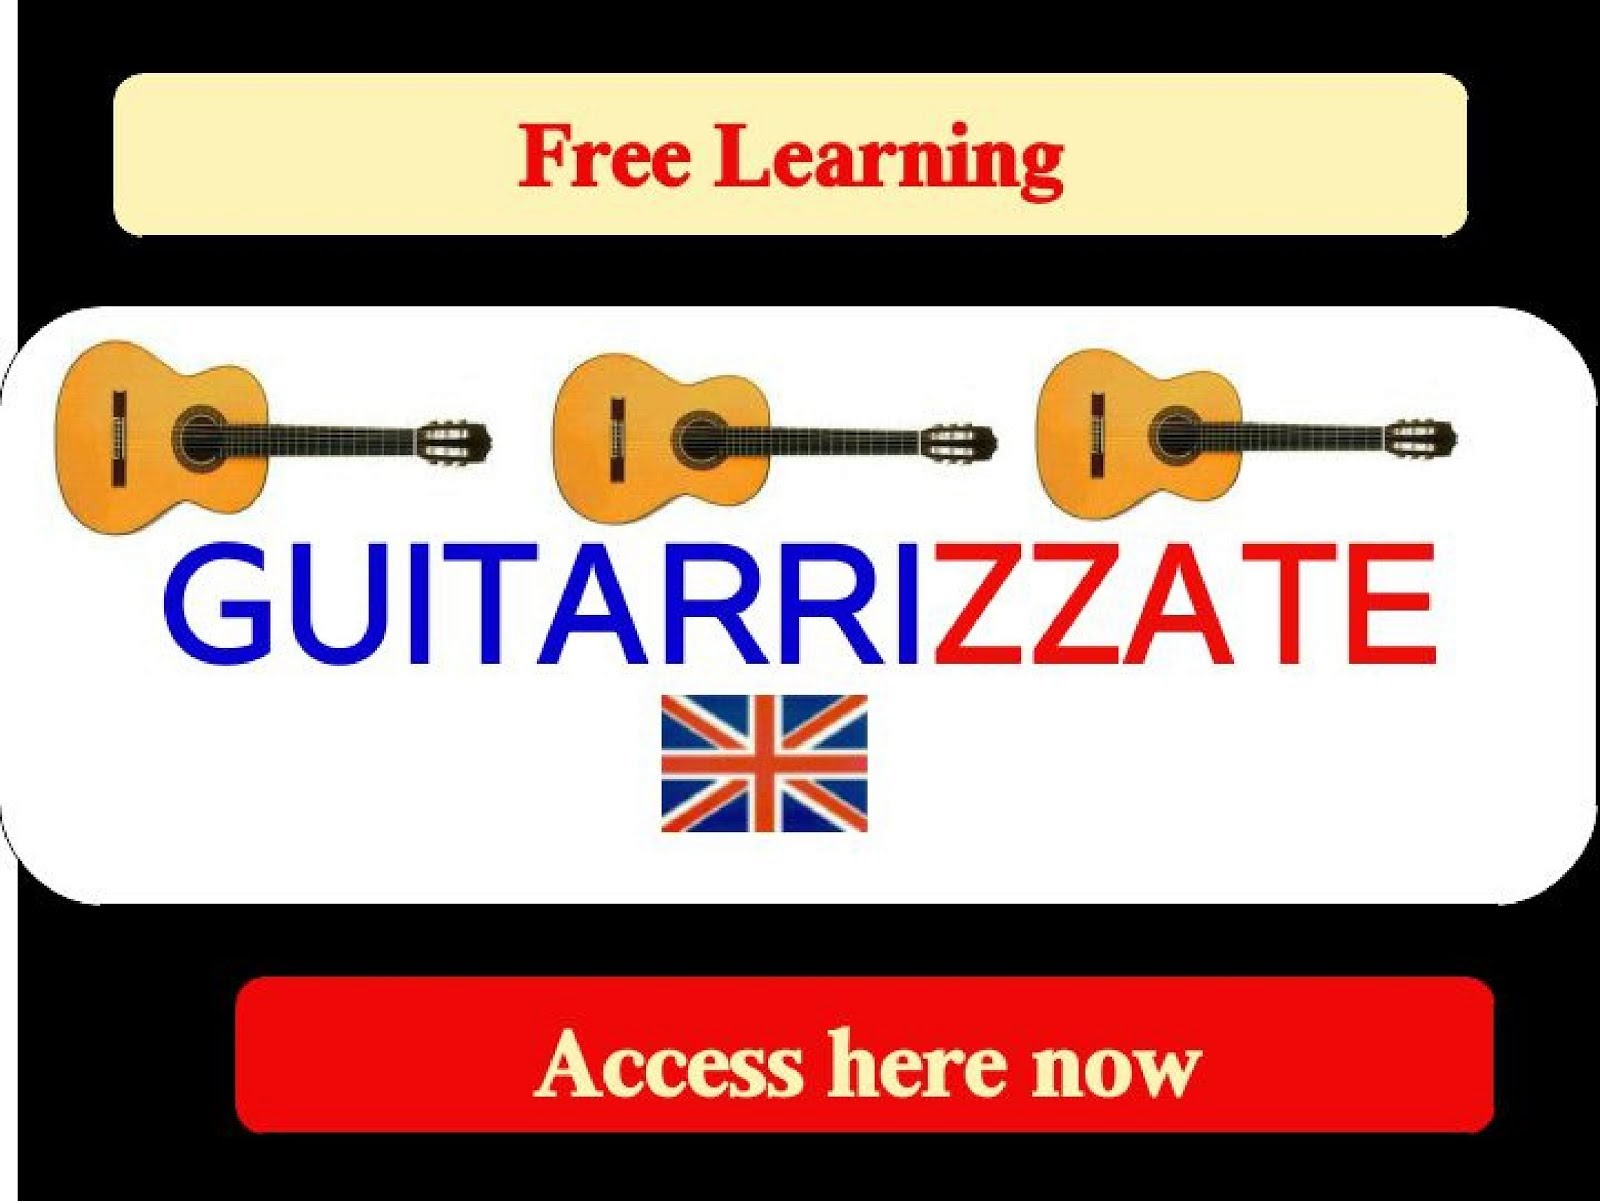 GUITARRIZZATE access now, Free Learning